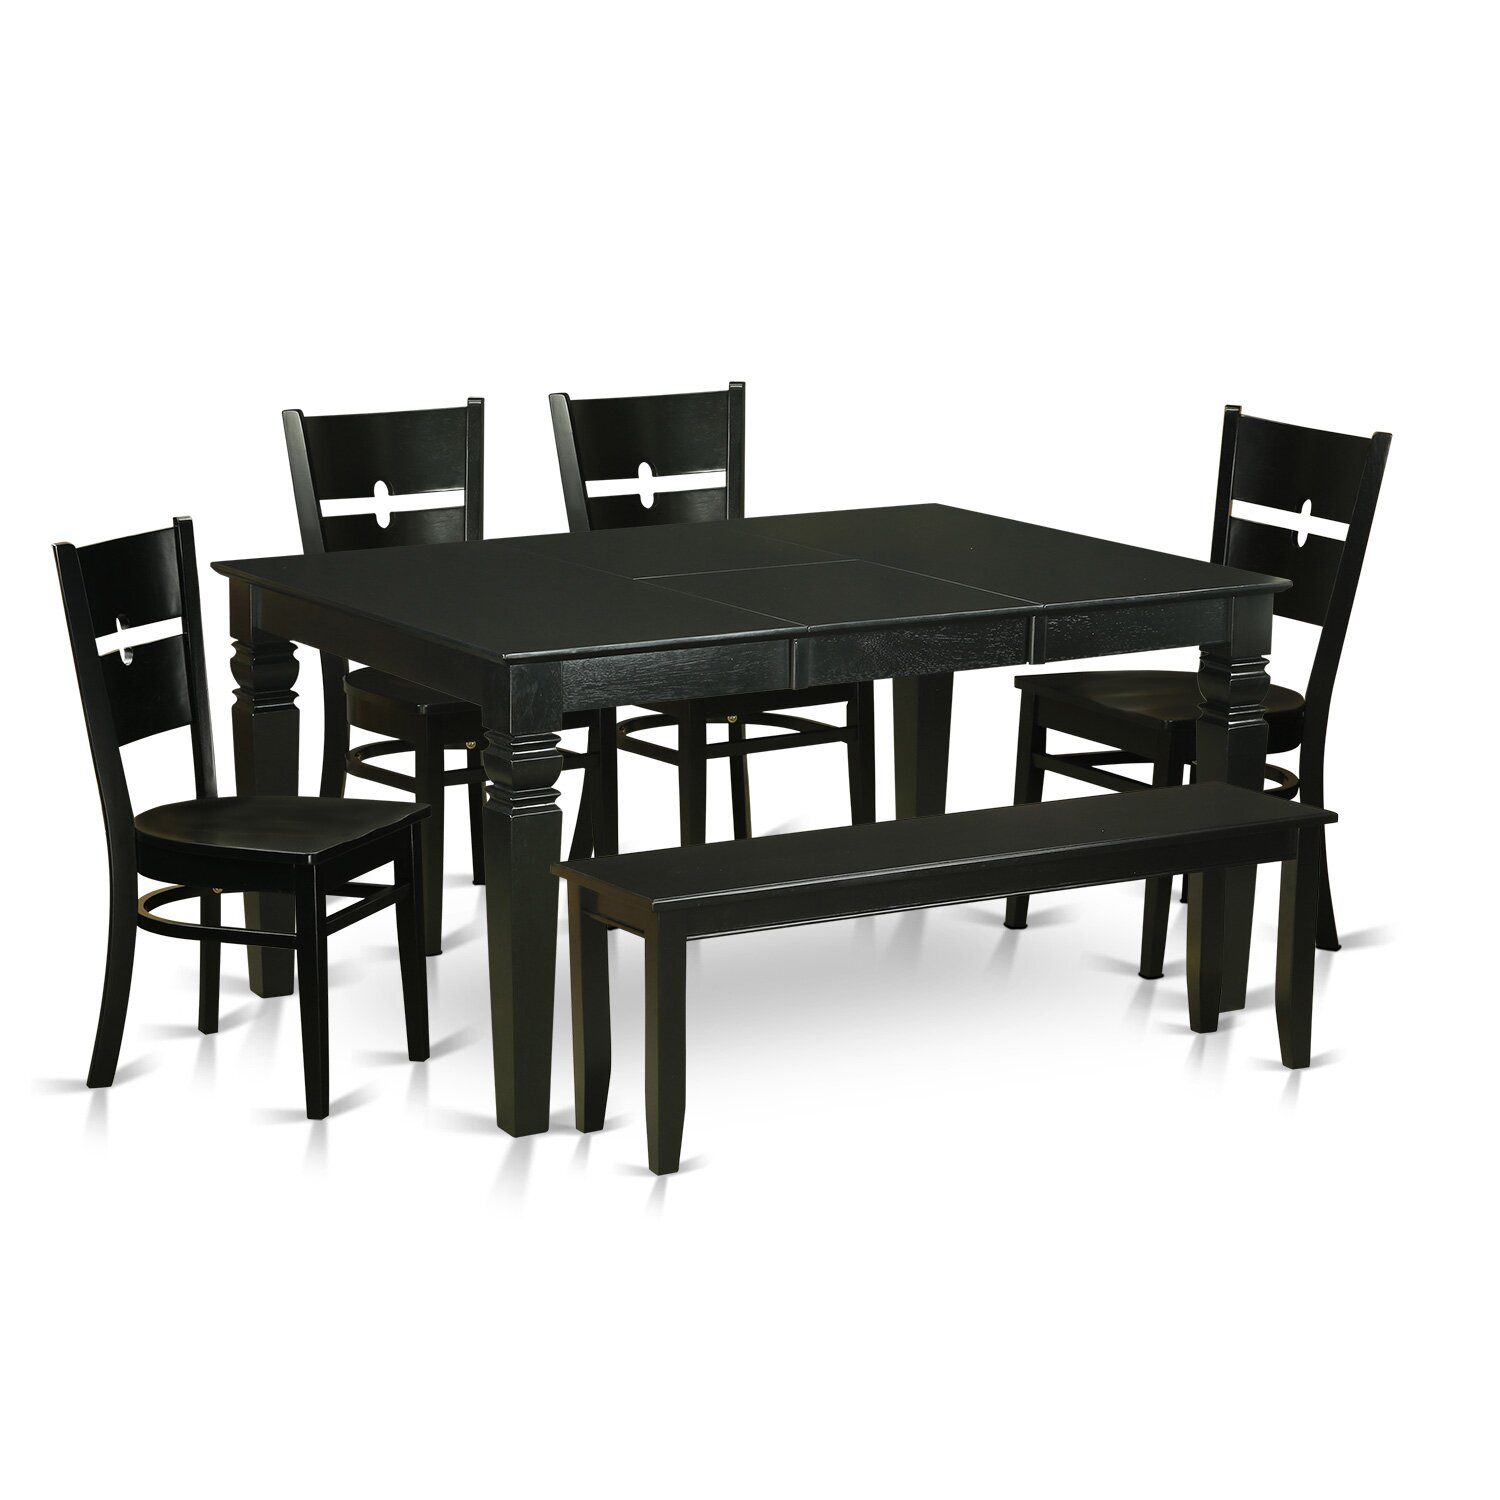 Wooden importers weston 6 piece dining set wayfair for Small dining table and bench set